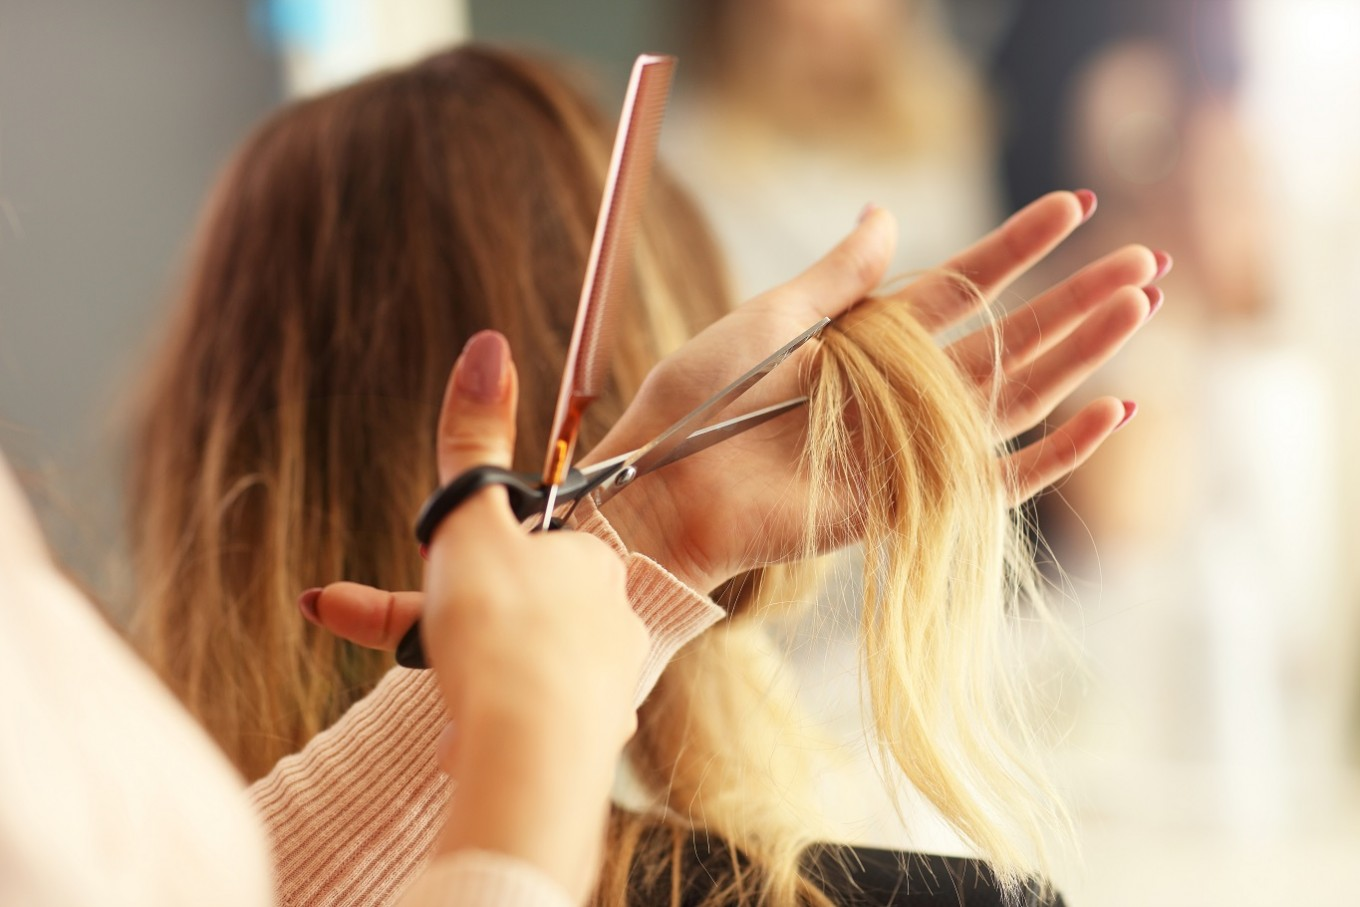 Jakarta to host first exhibition on hair care, hairdressing industry